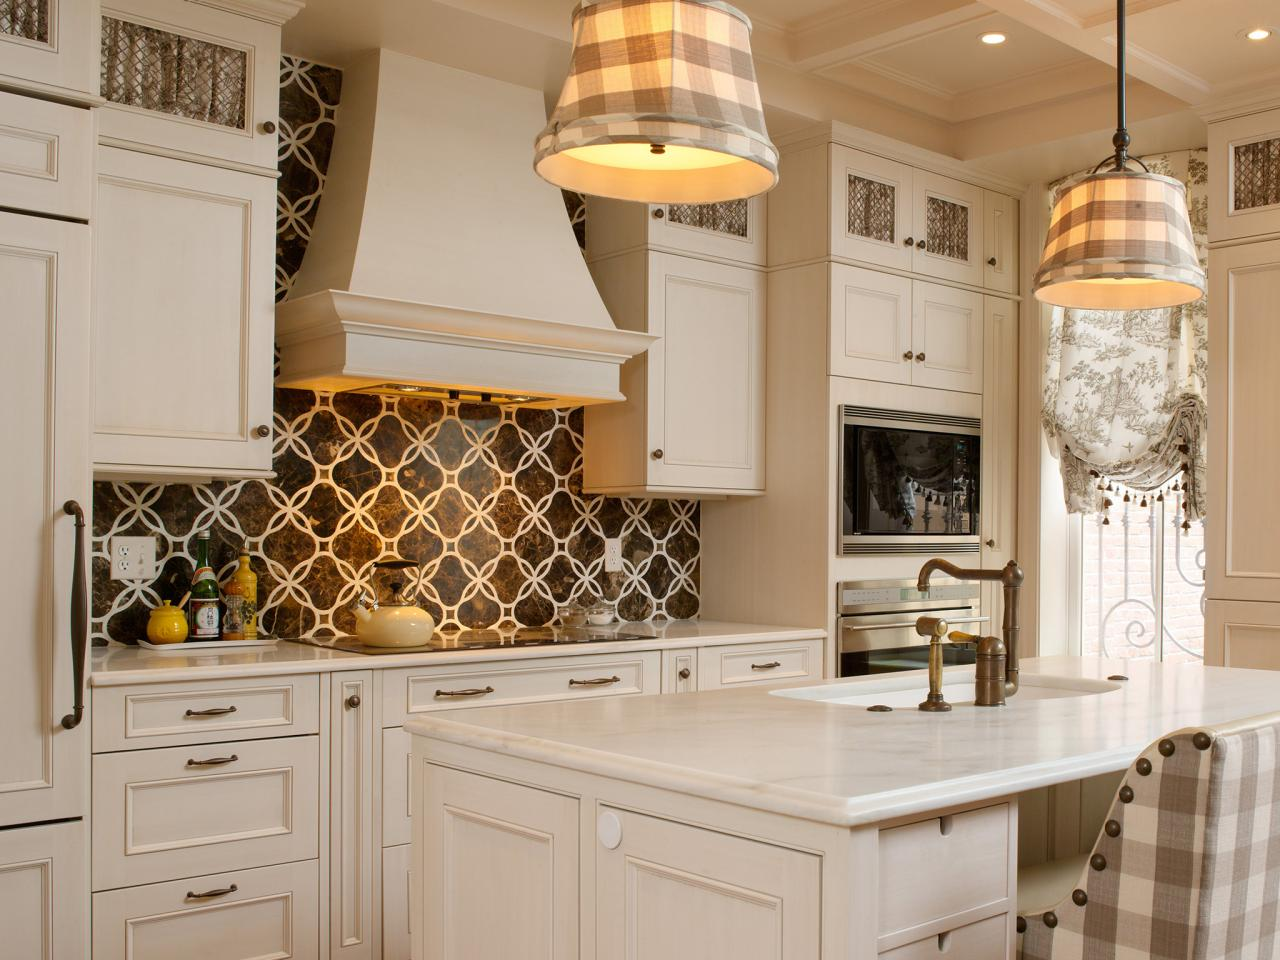 Classic Kitchen Designs and Decorating Ideas for Brown Pattern Tiles Kitchen Backsplash Designs